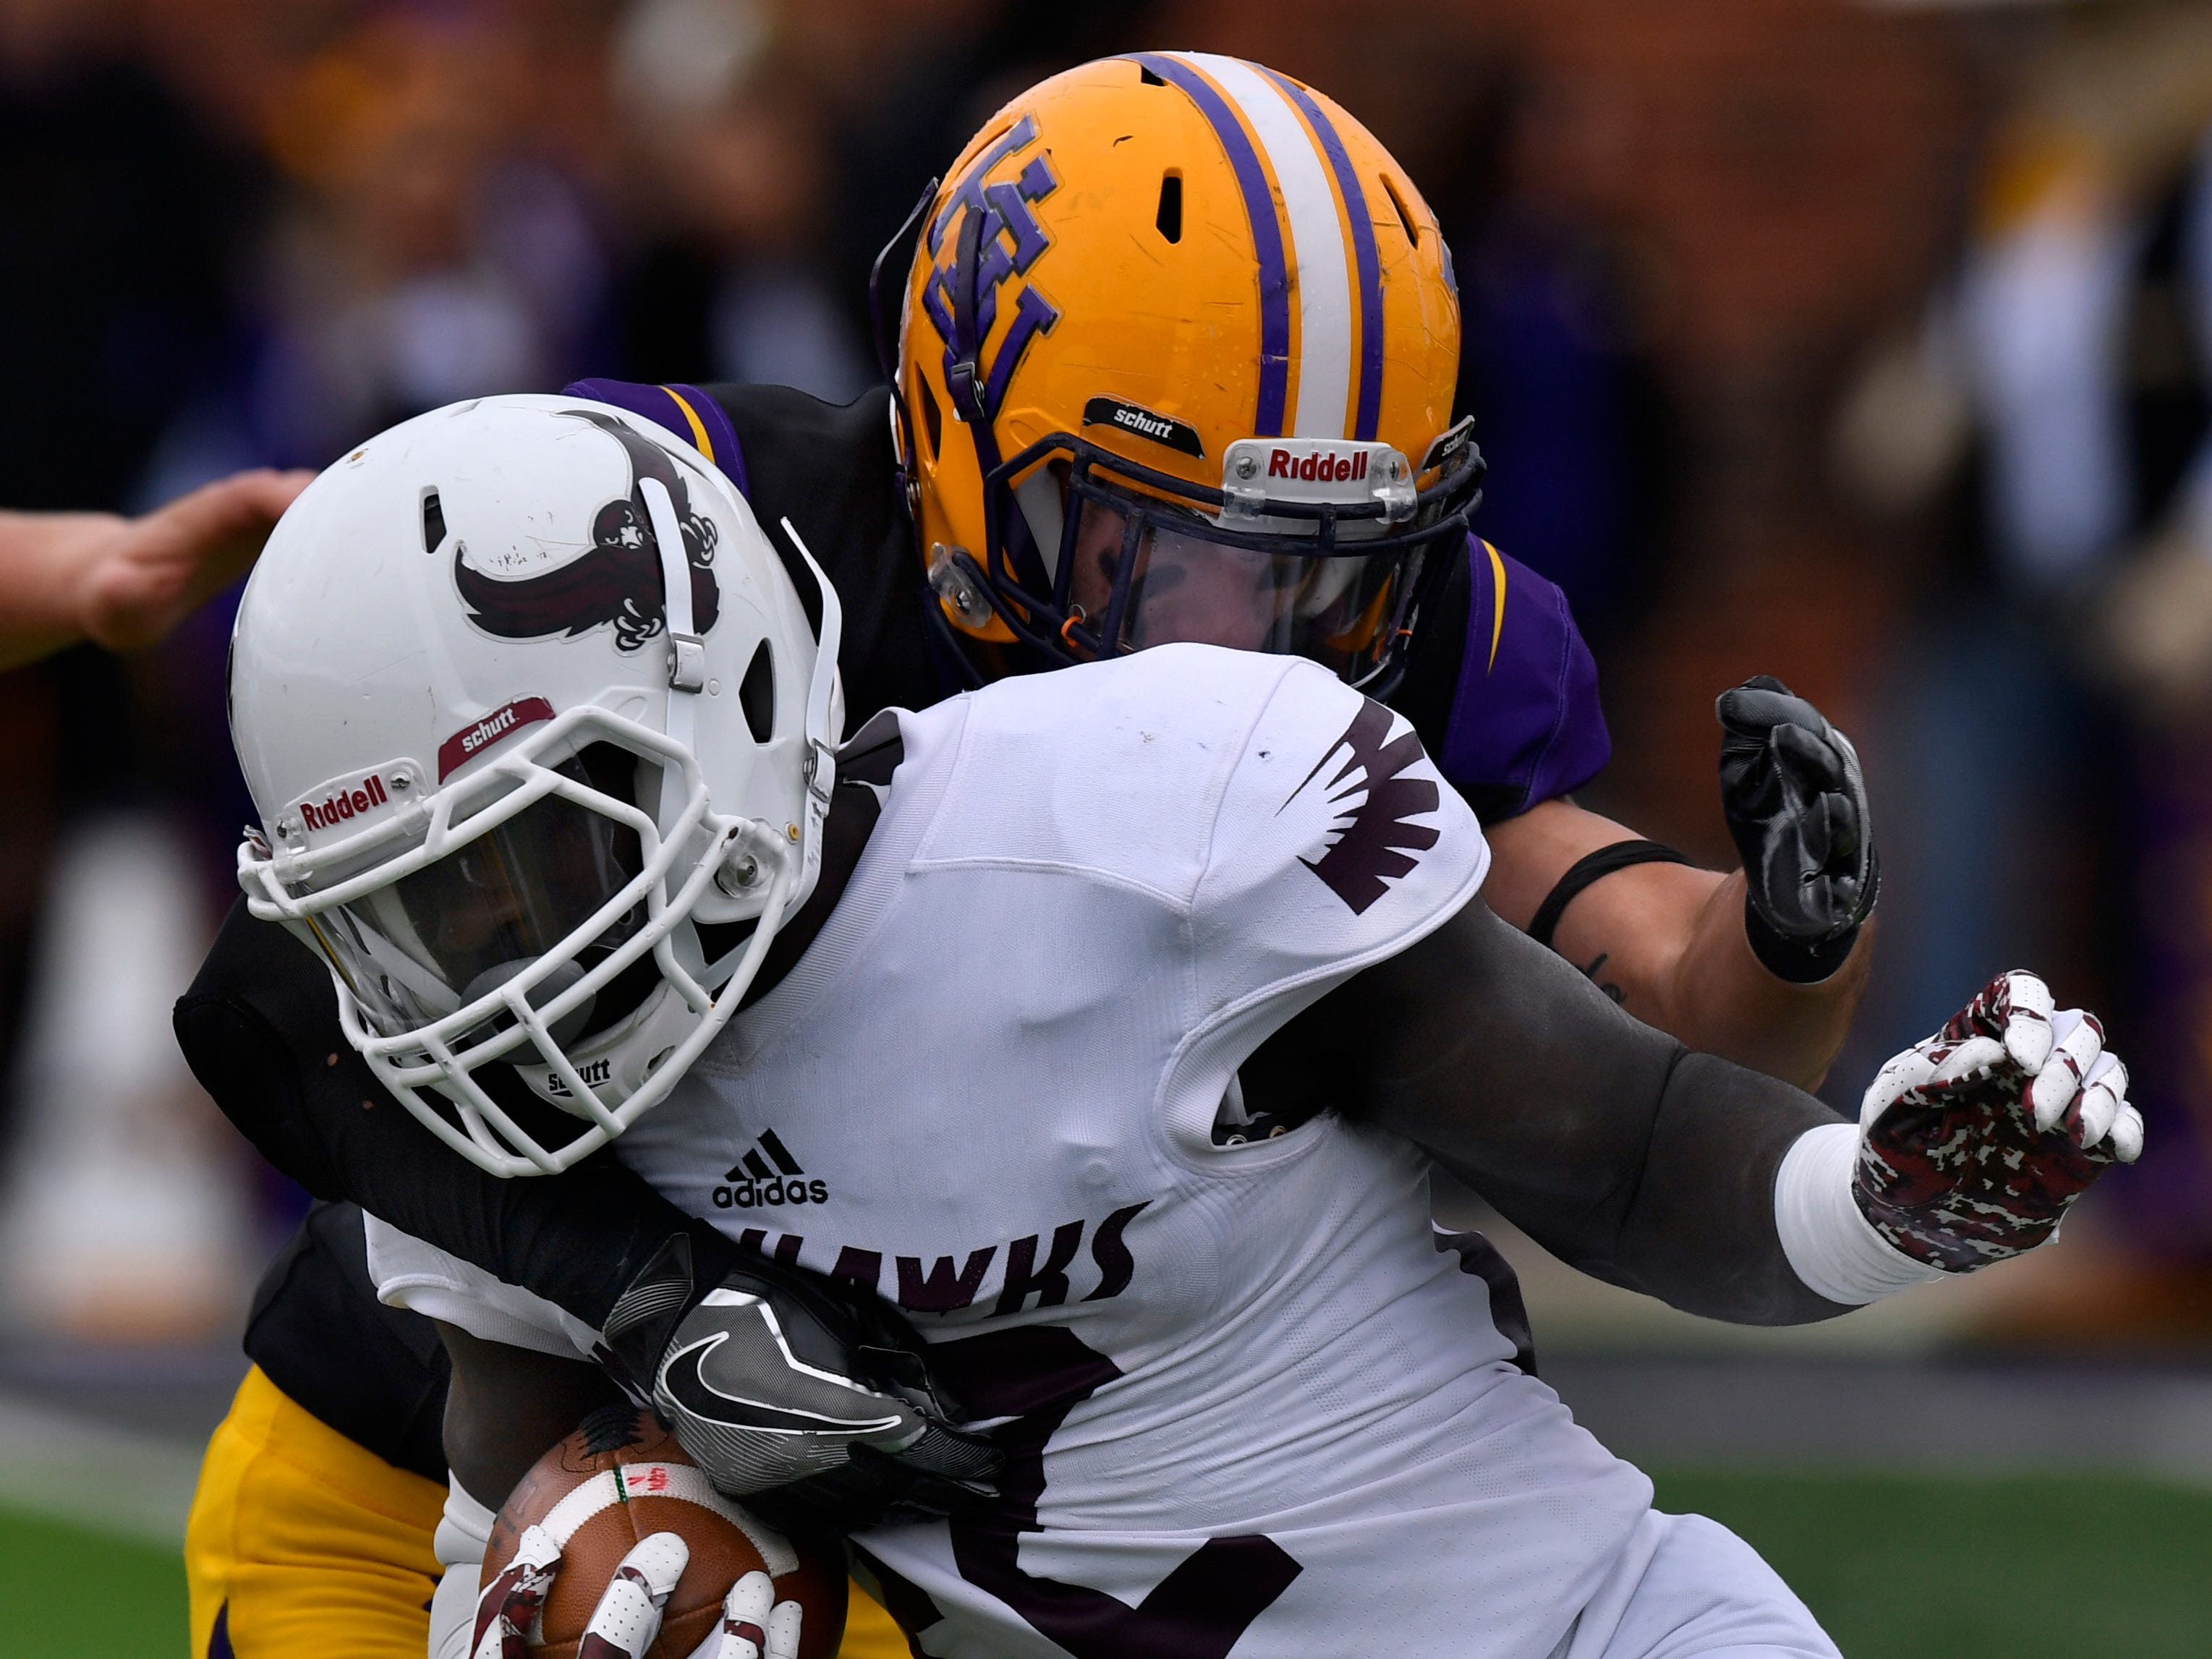 War Hawks running back Doyle Hughes is tackled by Cowboys safety Heriberto Elizondo during Saturday's game between Hardin-Simmons and McMurry universities. Final score was 83-6, HSU.